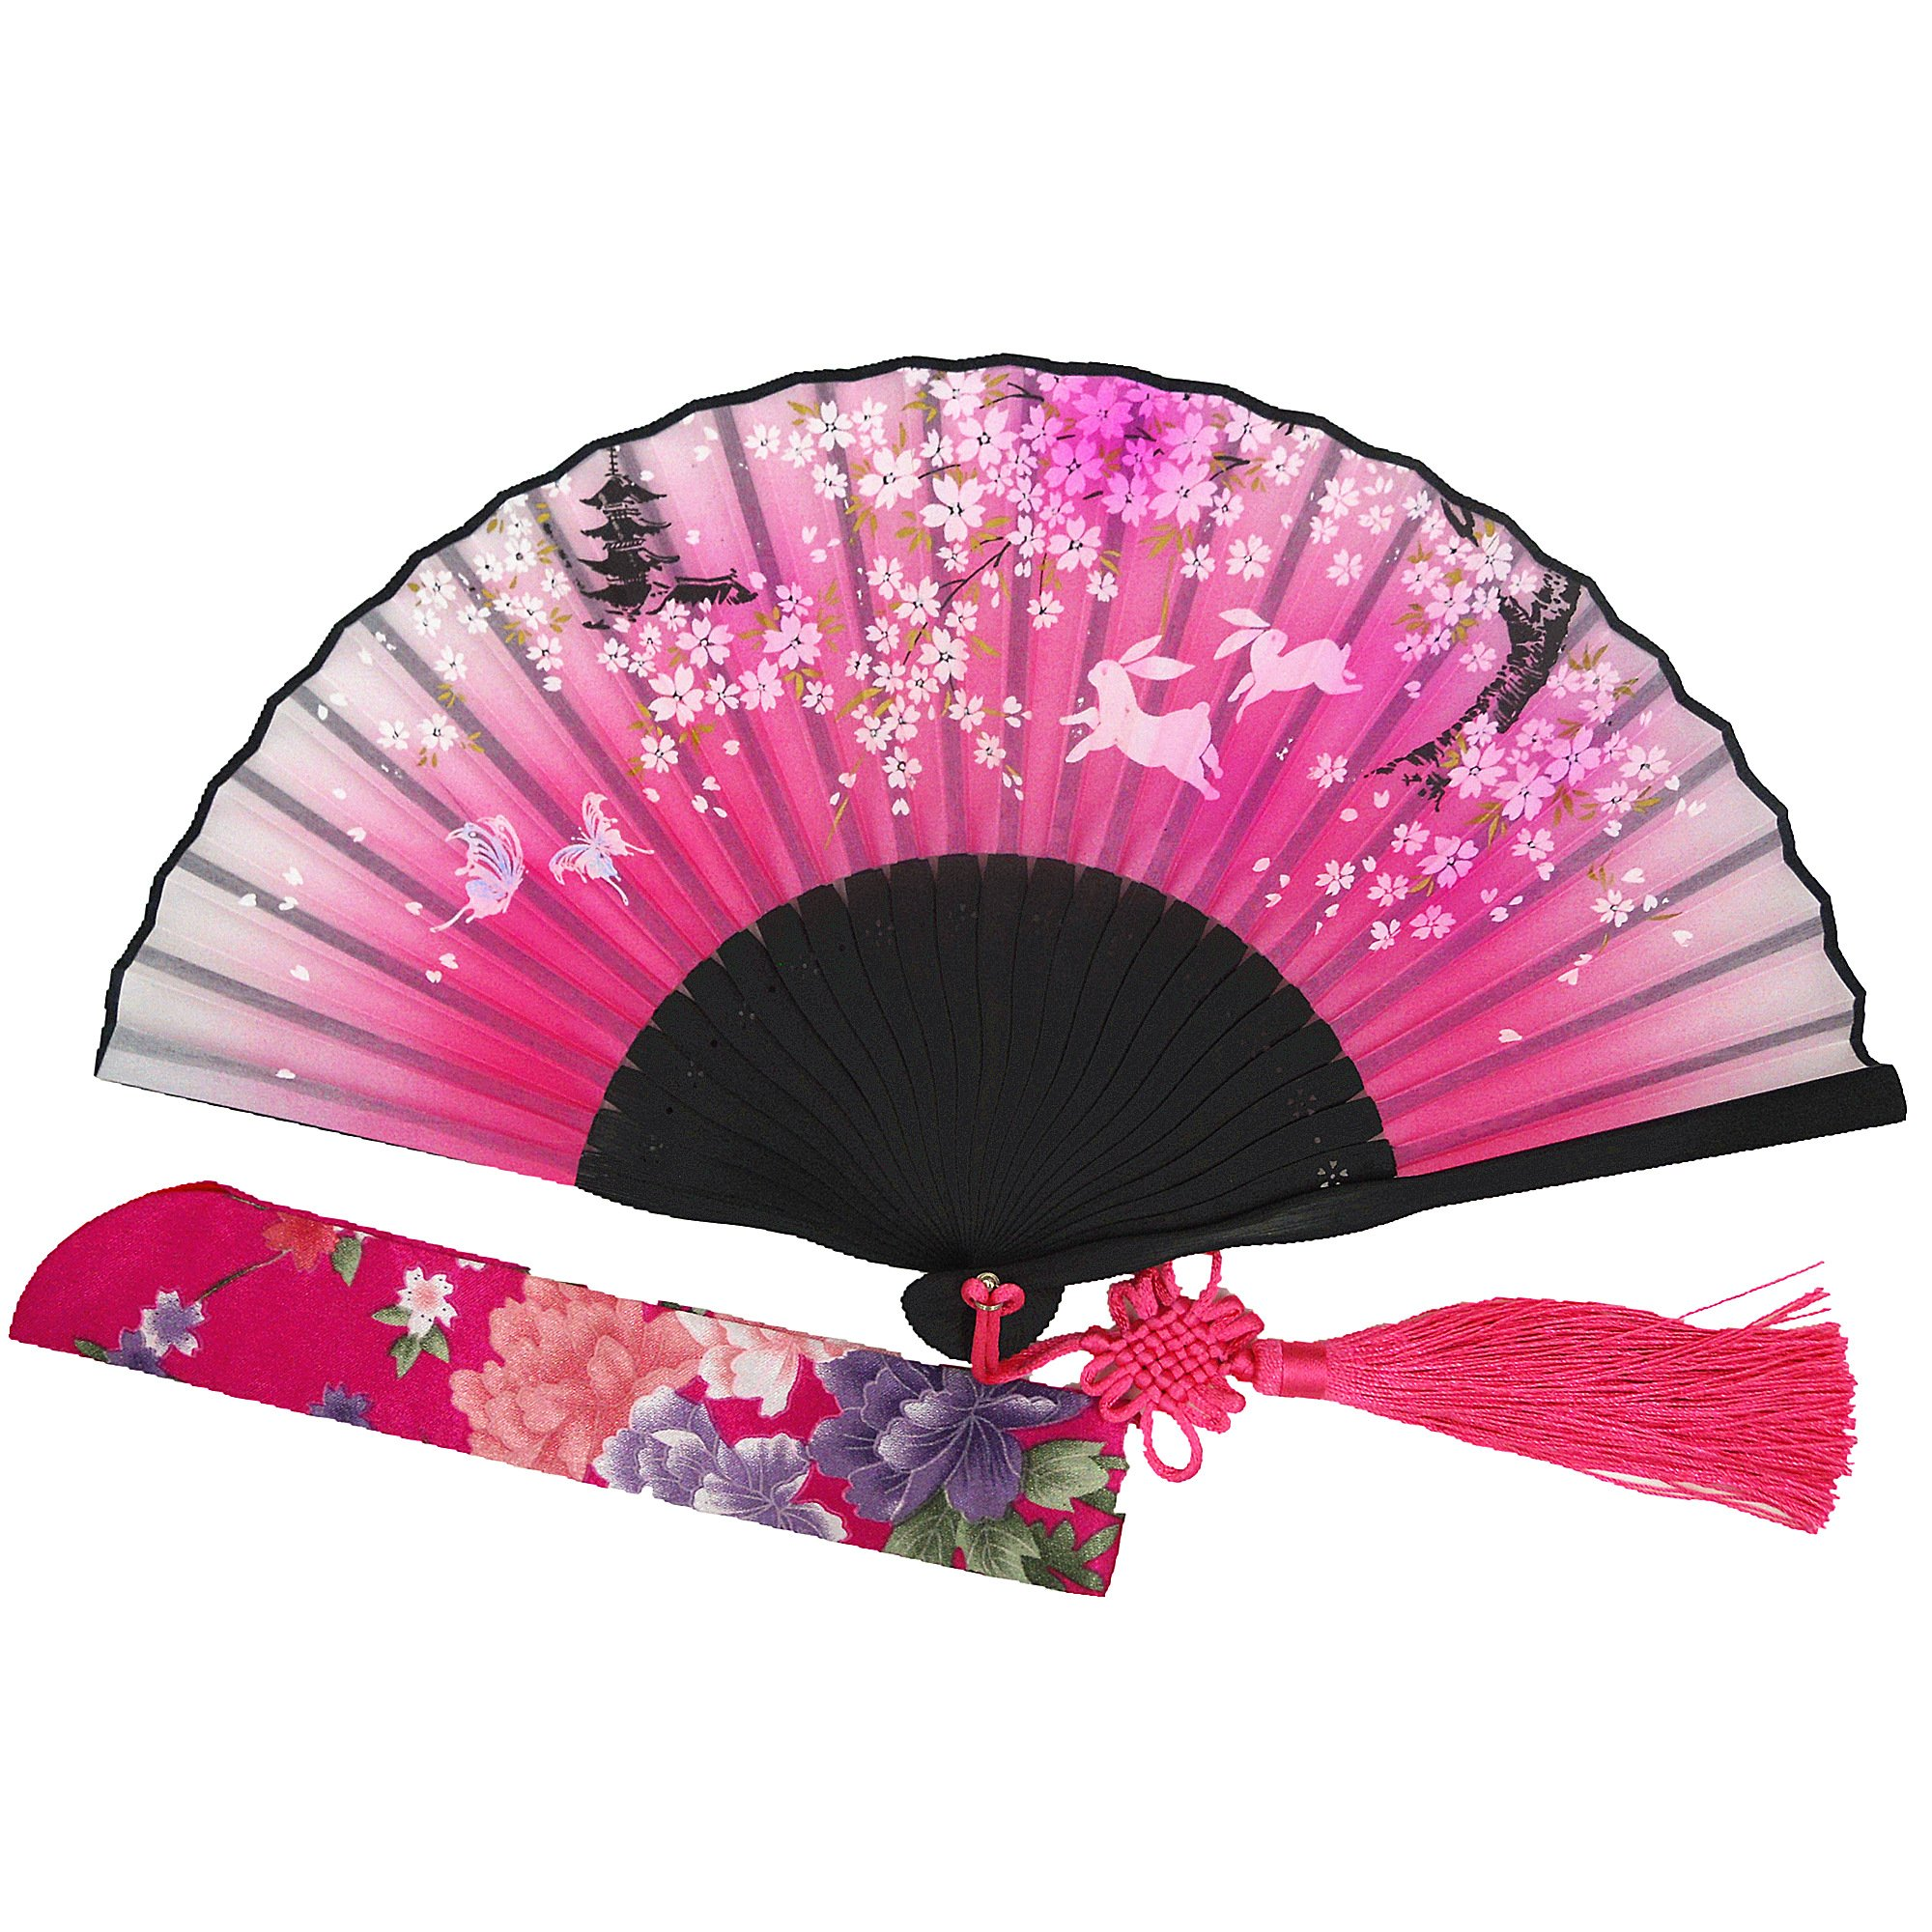 Wise Bird Charming Elegant Modern Woman Handmade Bamboo Silk 8'' Folding Pocket Purse Hand Fan, Collapsible Transparent Holding Painted Fan with Silk Pouches/ Wrapping. Beautiful Fashion Accessory for Wedding, Bride Maids, Party, Cosplay, Business Gifts, T